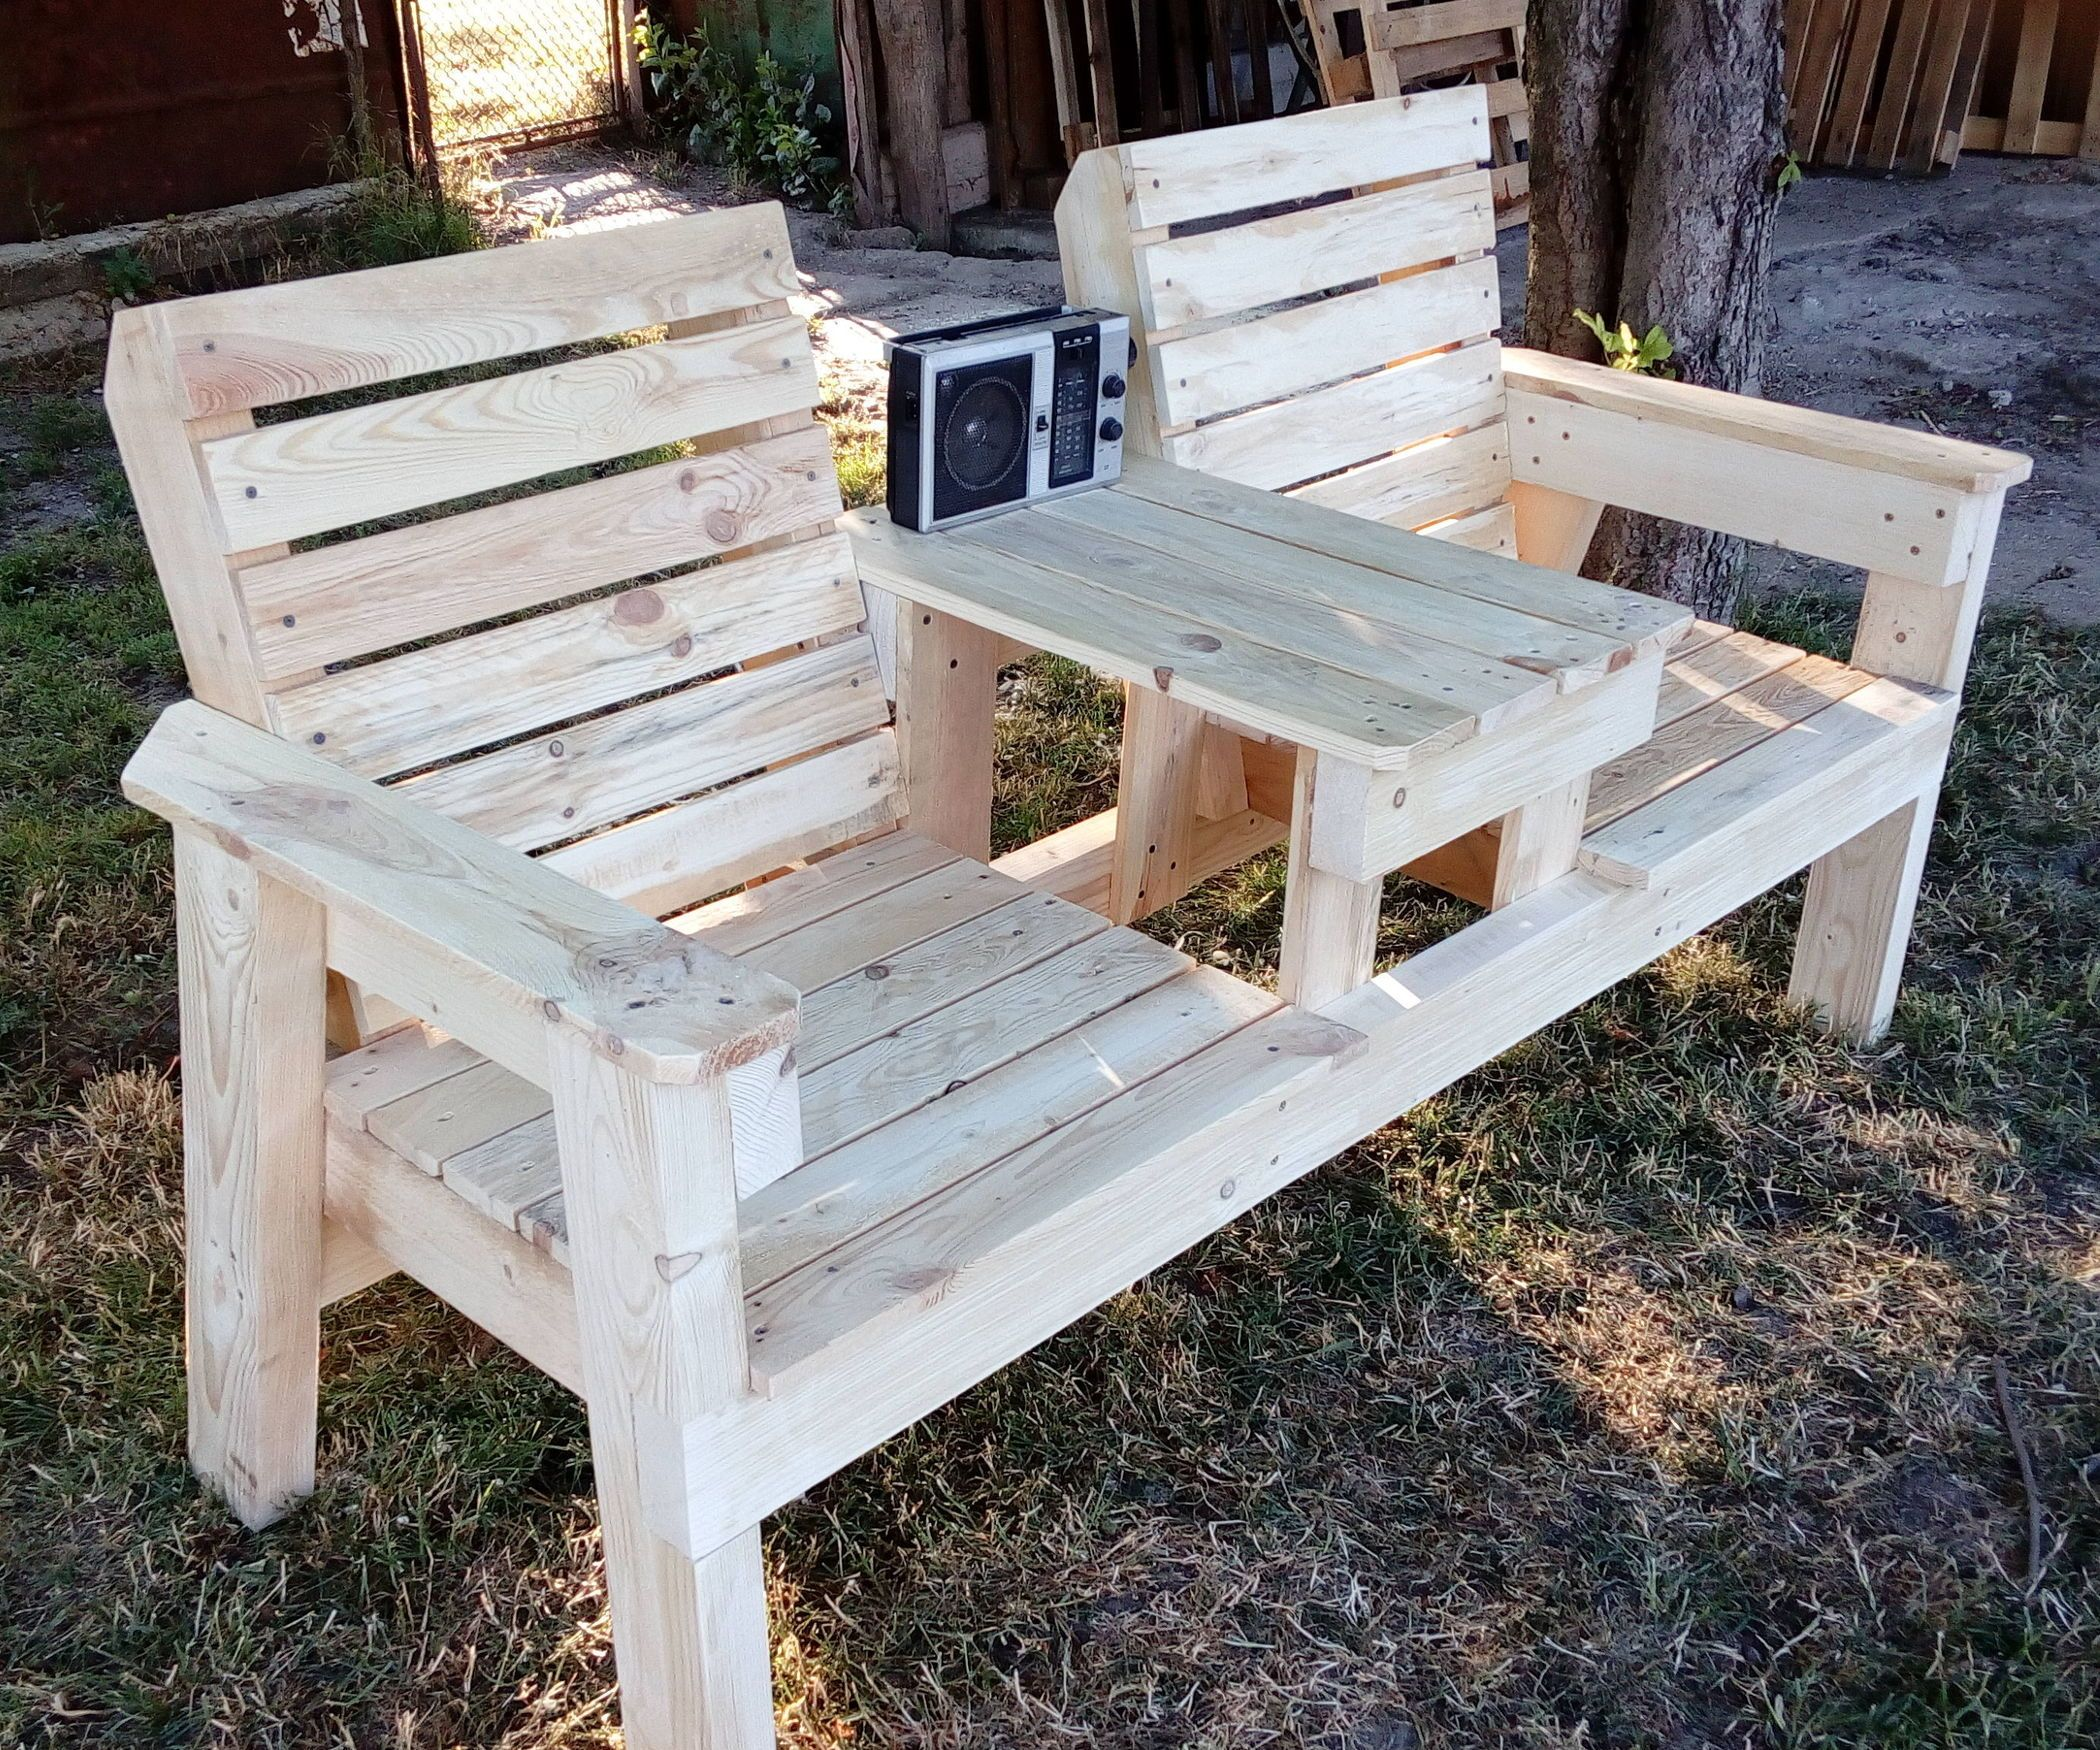 Double Chair Bench With Table Outdoor Furniture Chairs Pallet Furniture Outdoor Wood Bench Outdoor